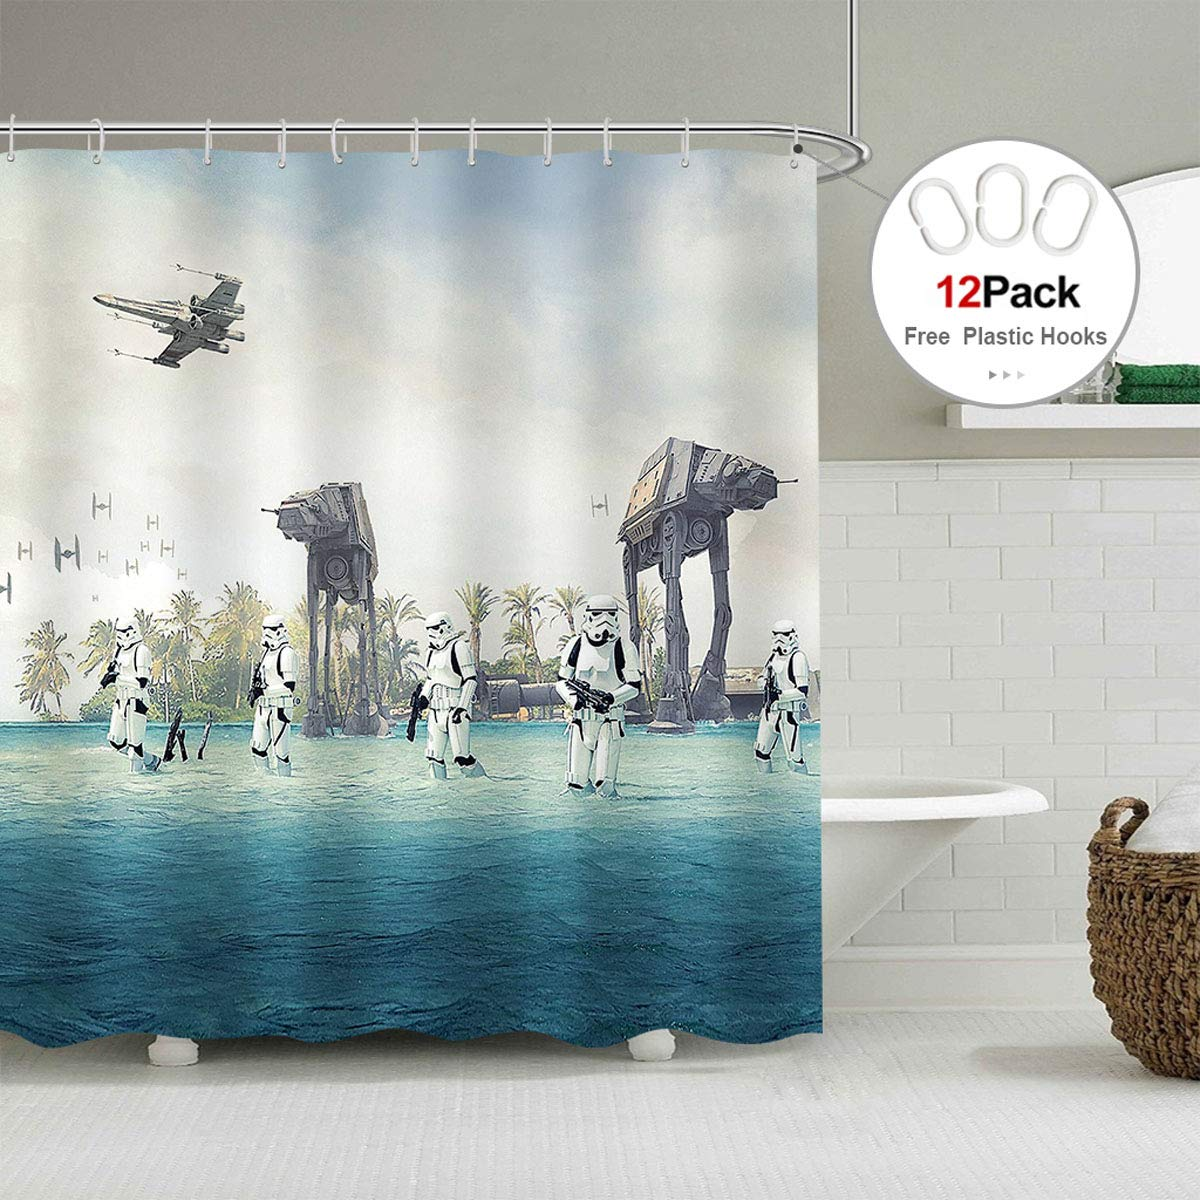 At at empire strikes back in star wars movie shower curtain set blue ocean green tree stormtroopers shower curtain panel 72x72 inch polyester waterproof